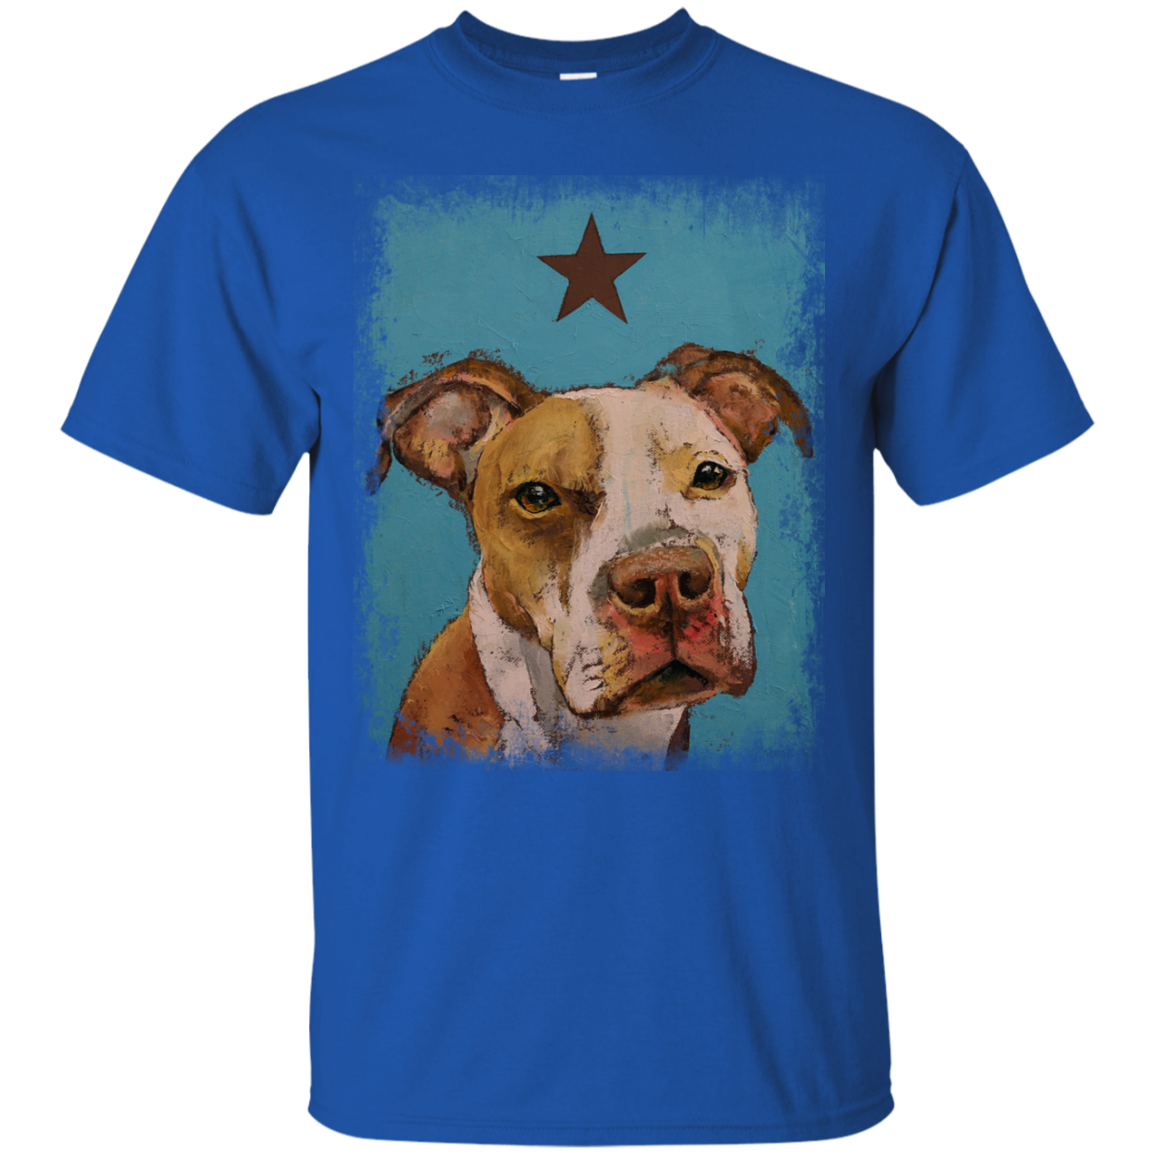 AMERICAN PIT BULL Matching Family T-Shirts - The Sun Cat